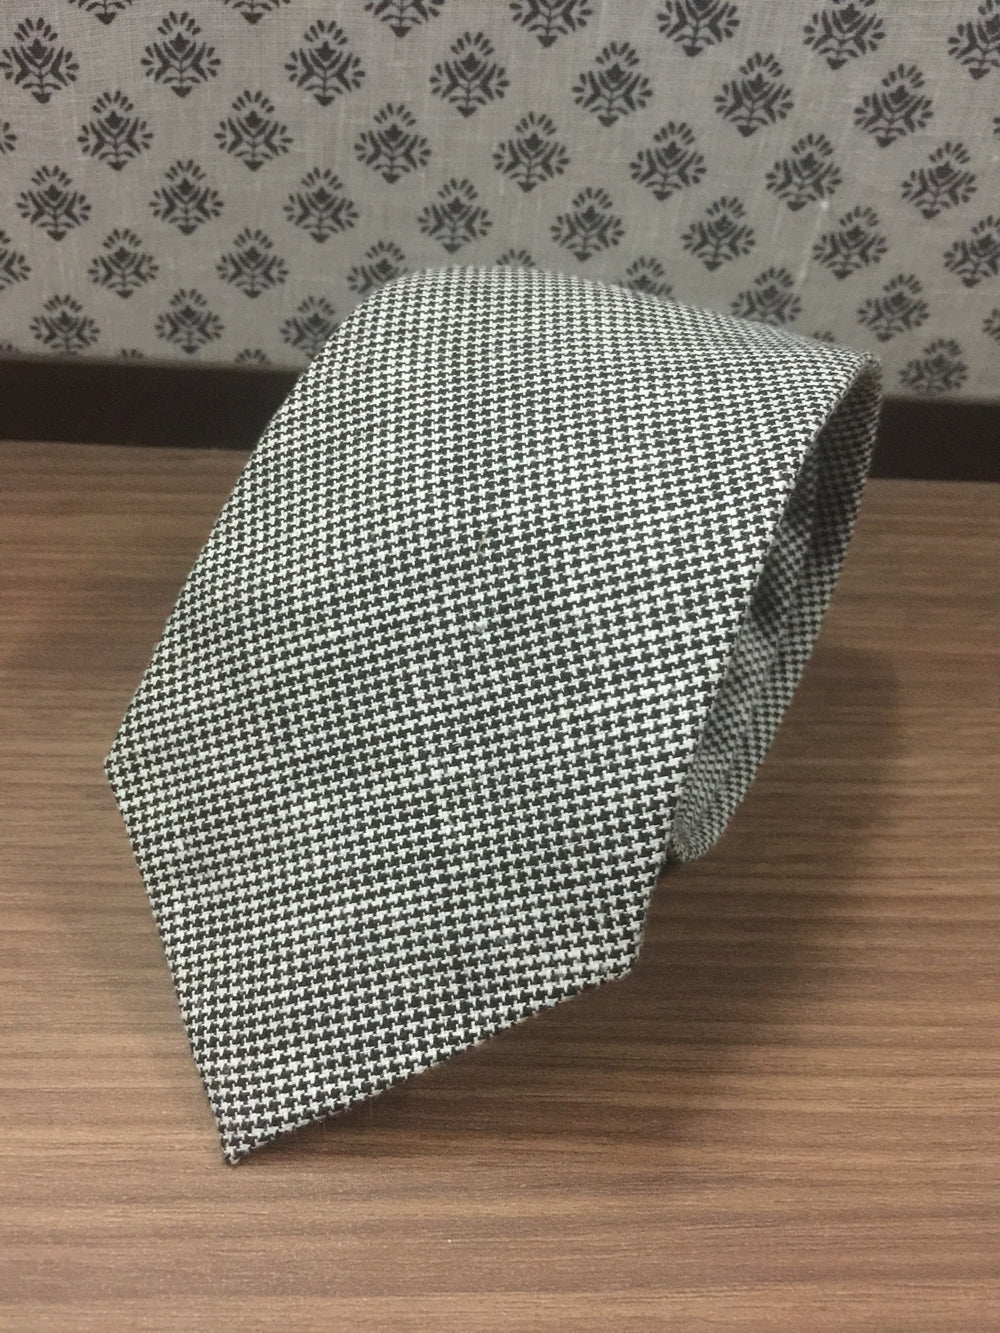 Linen Tie: Black White Houndstooth